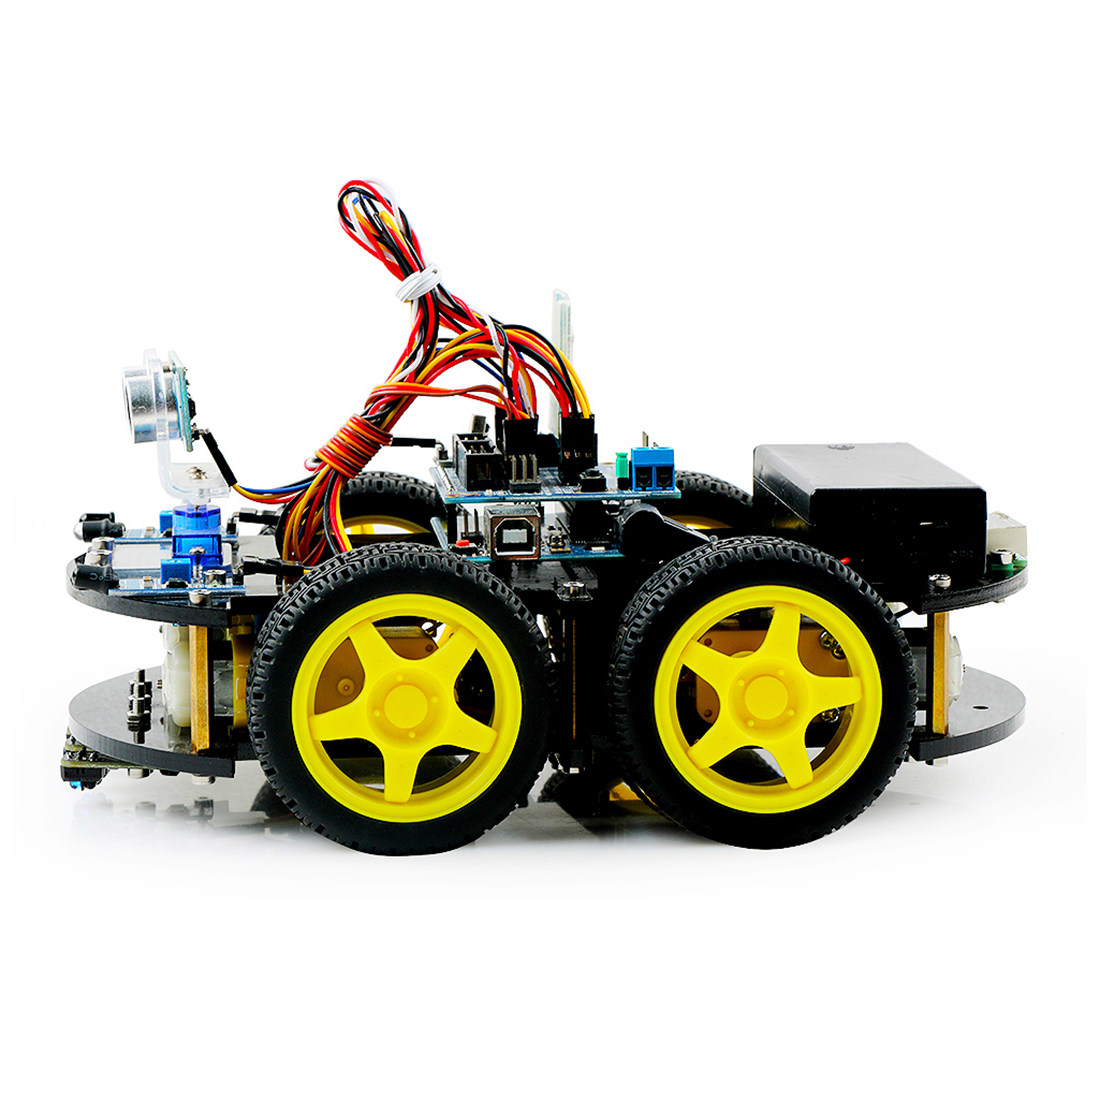 DIY Obstacle Avoidance Smart Programmable Toys Robot Car Educational Learning Kit For Arduino UNO / BLE UNO Kids Gift New